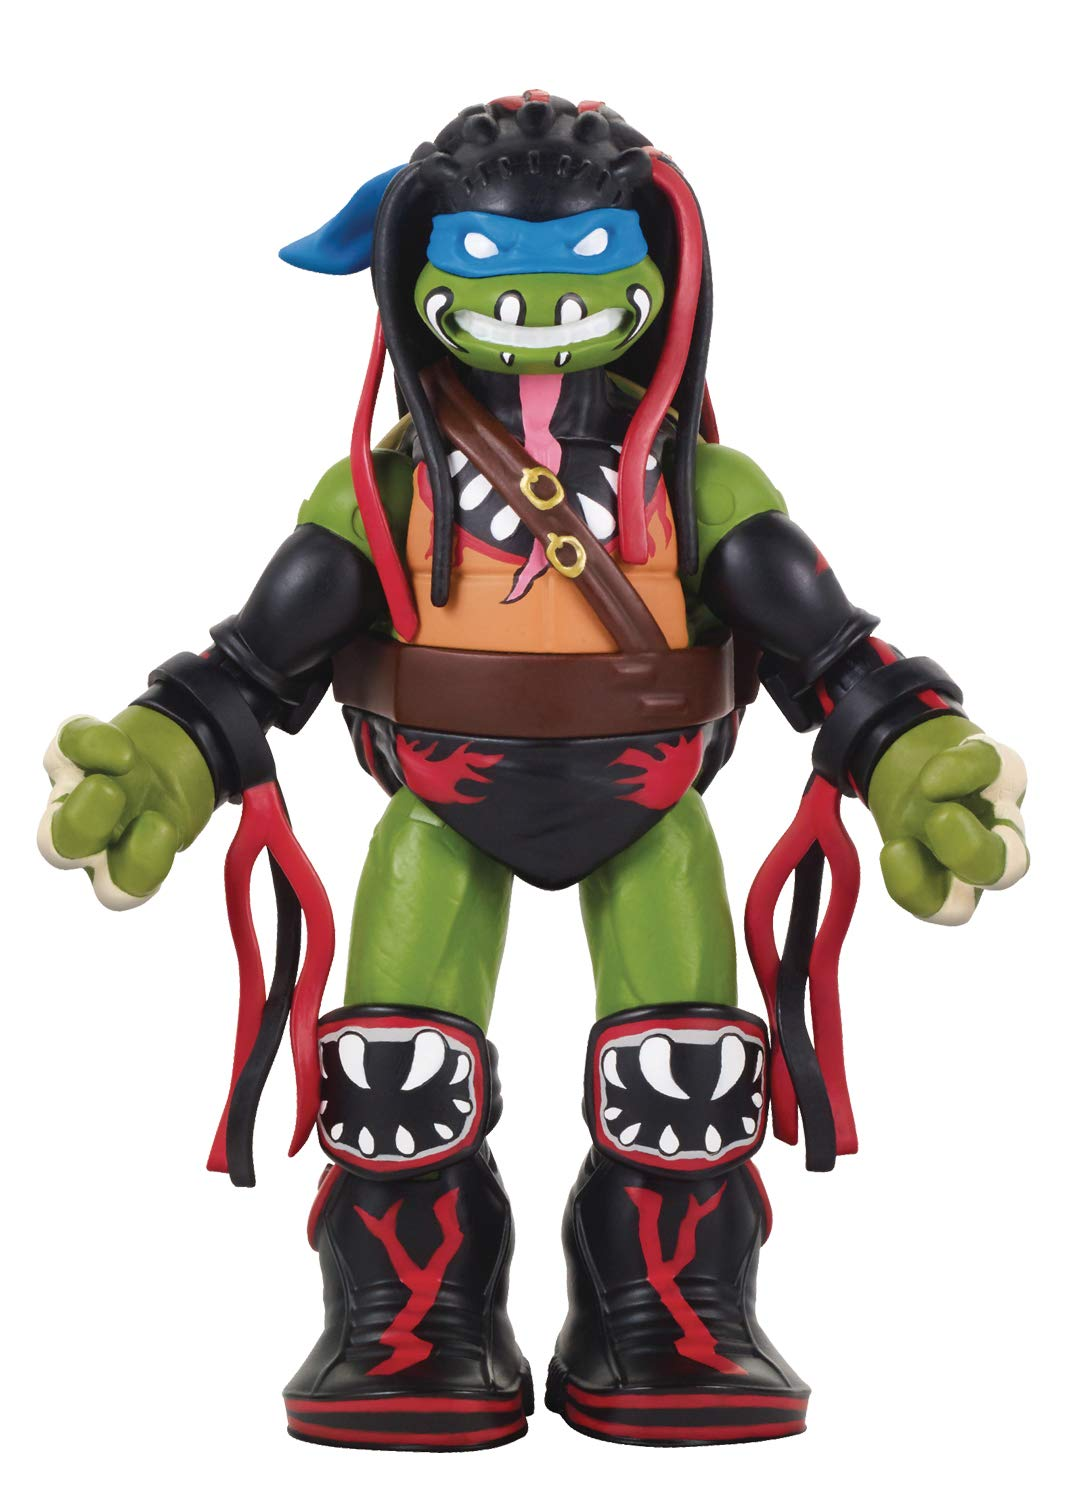 Teenage Mutant Ninja Turtles Ninja Super Stars: Leonardo as Finn Balor Figure